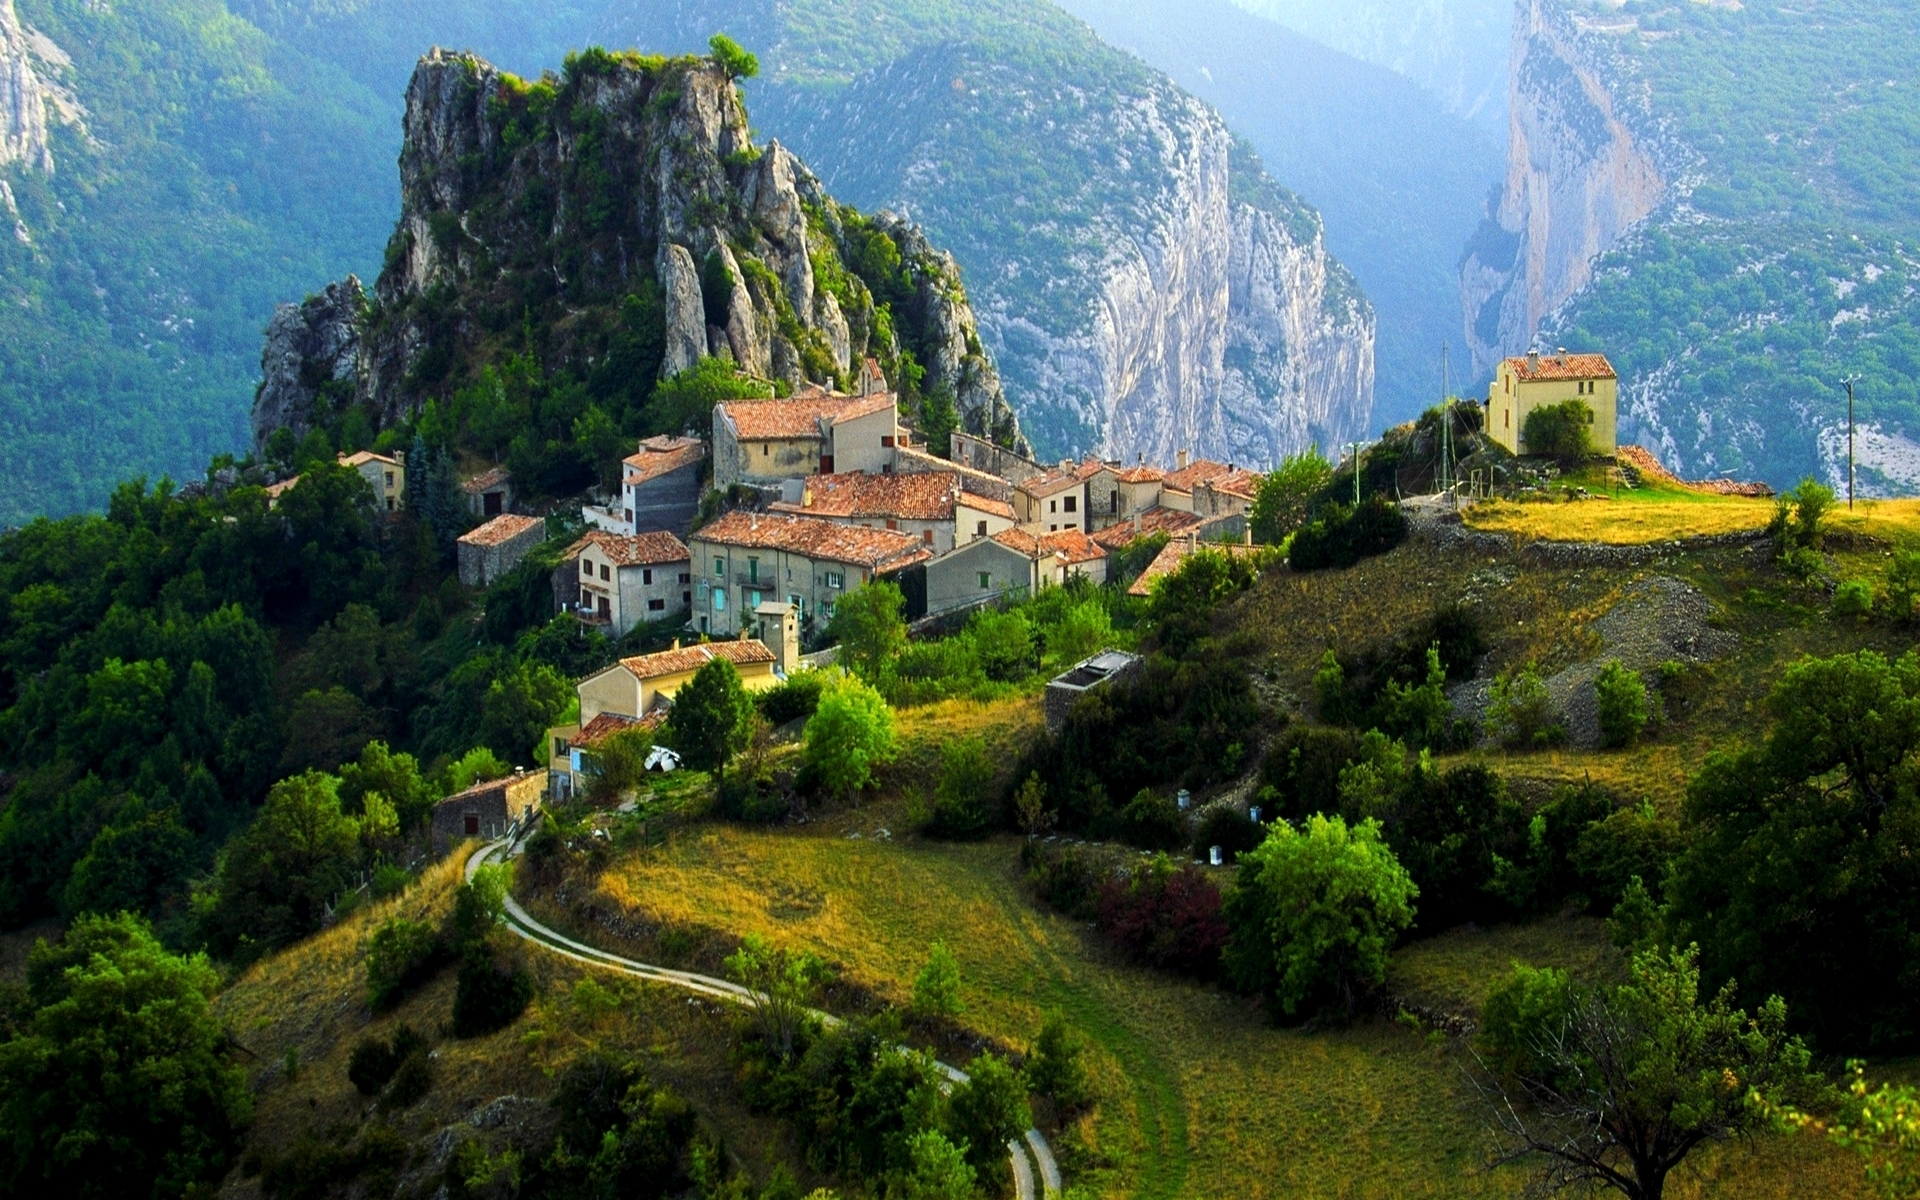 31383 download wallpaper Landscape, Houses, Mountains screensavers and pictures for free